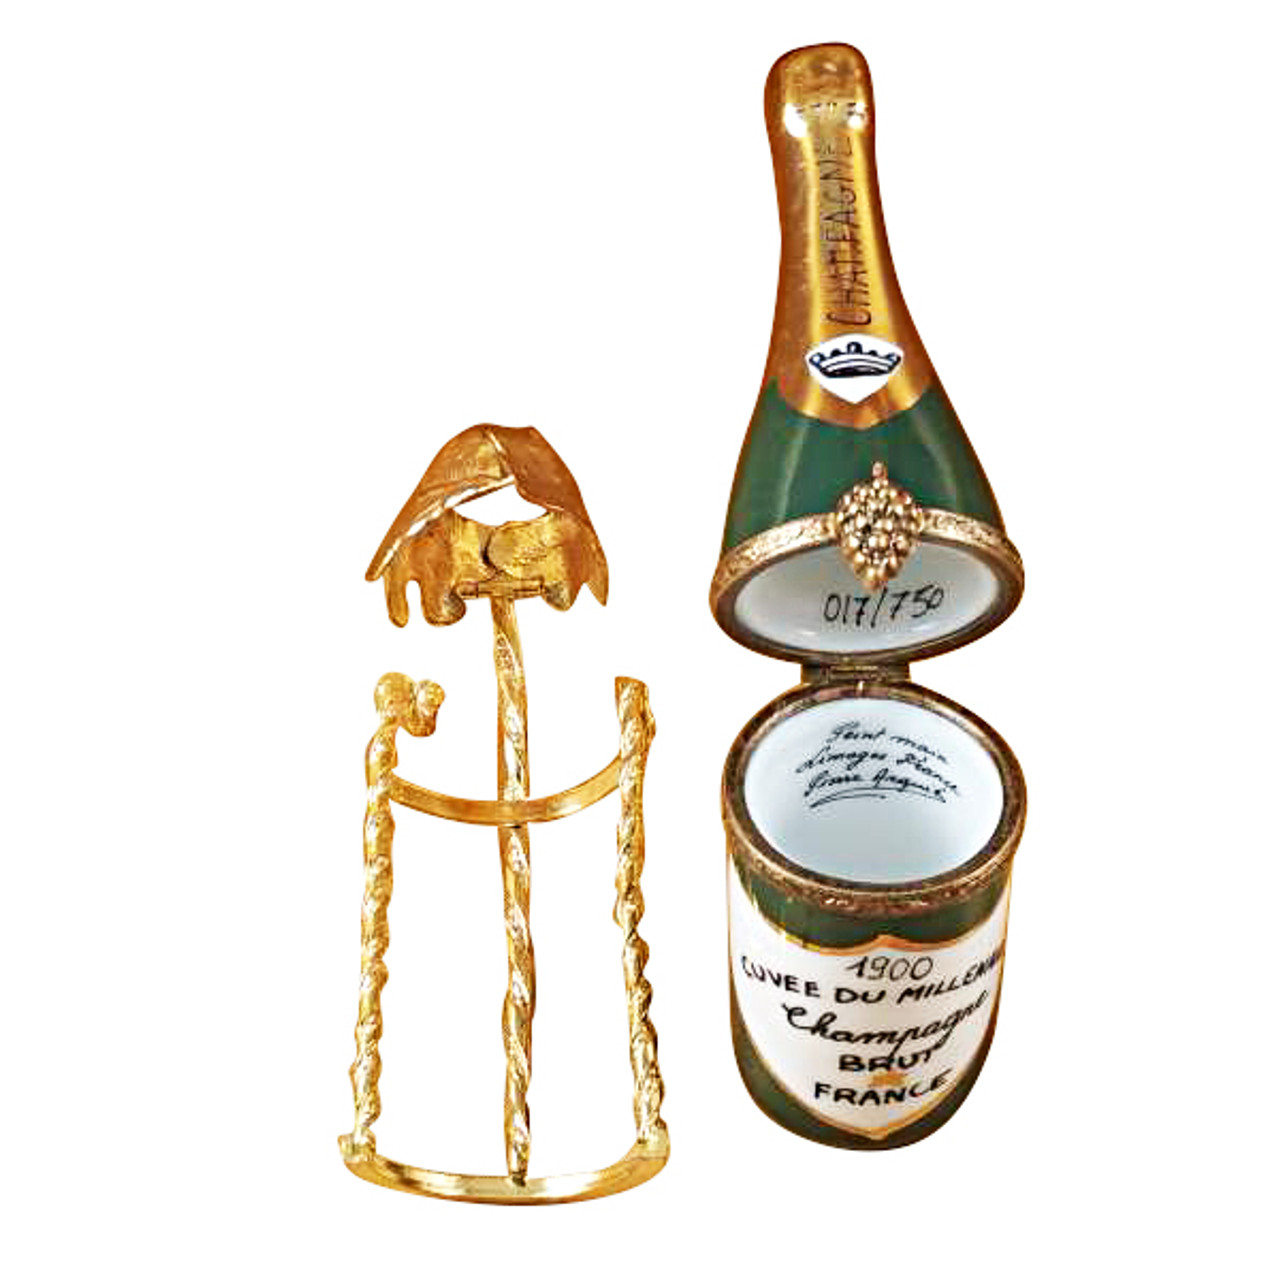 Limoges Imports Champagne In Brass Grape Leaves Holder Limoges Box